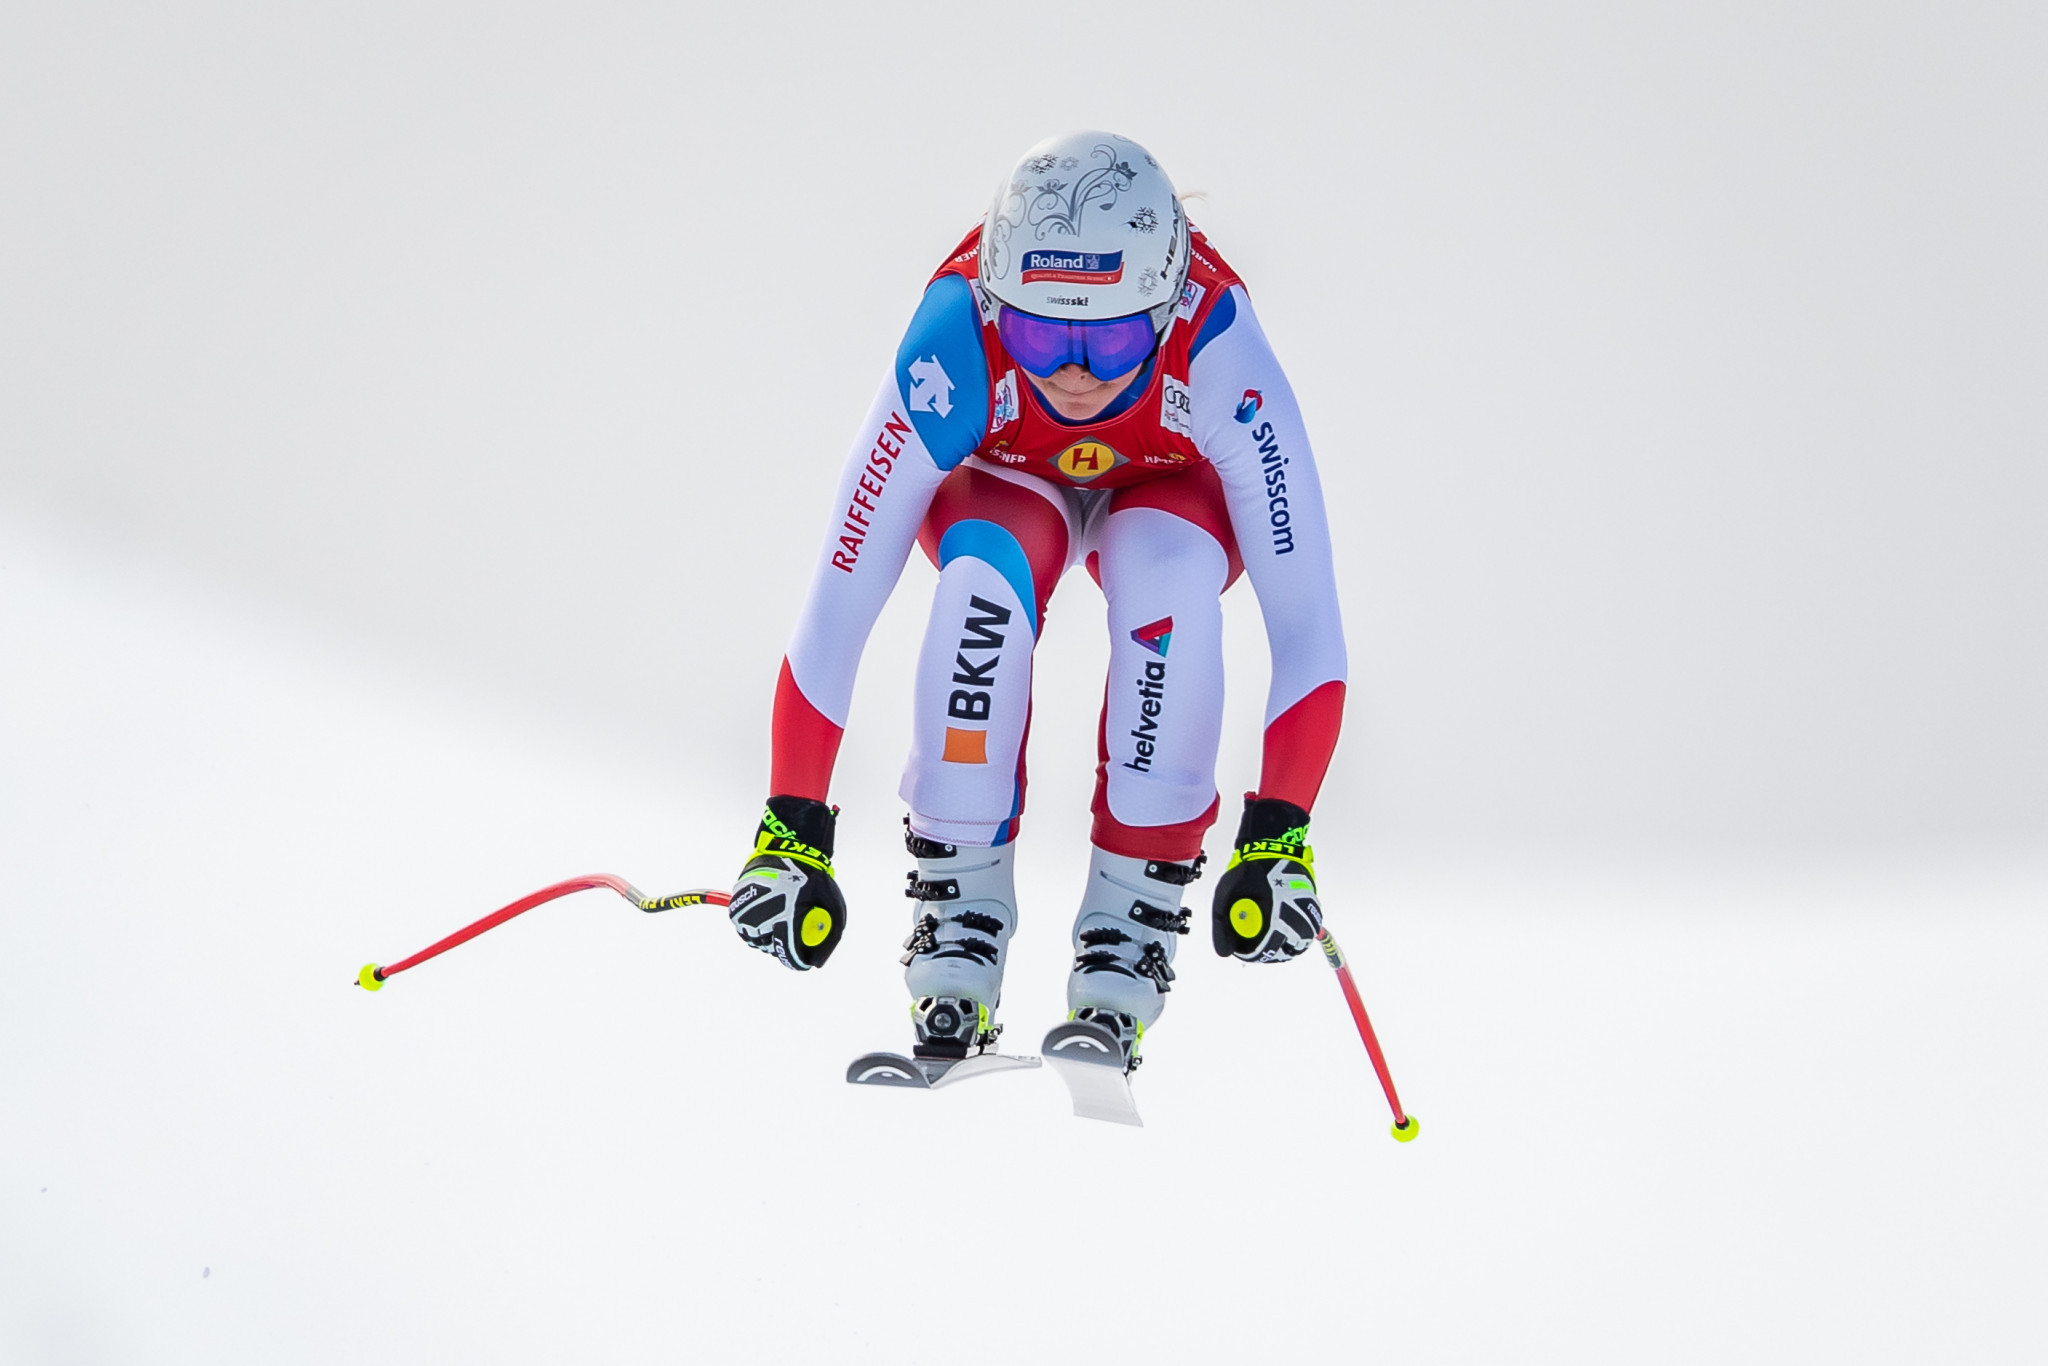 Corrine Suter on her way to victory in Alternmarkt, Austria, in the third leg of the World Cup downhill ©Getty Images